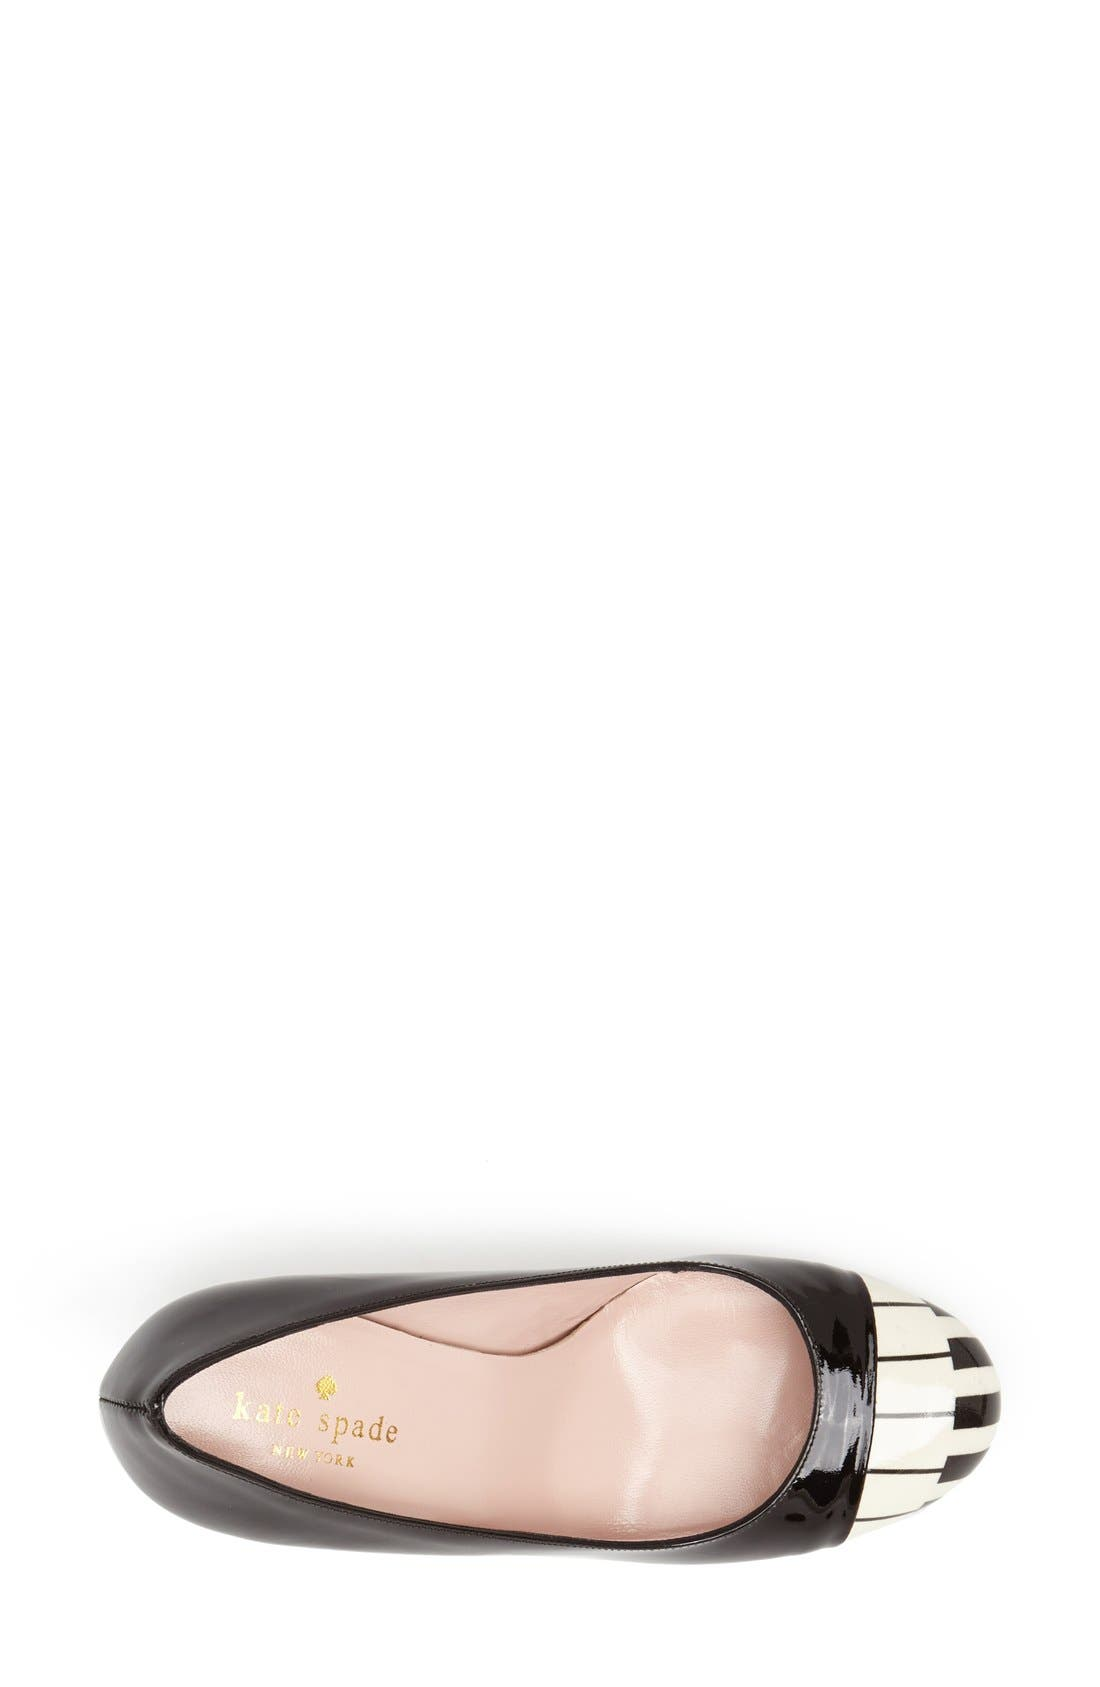 Alternate Image 3  - kate spade new york 'keys' pump (Women)